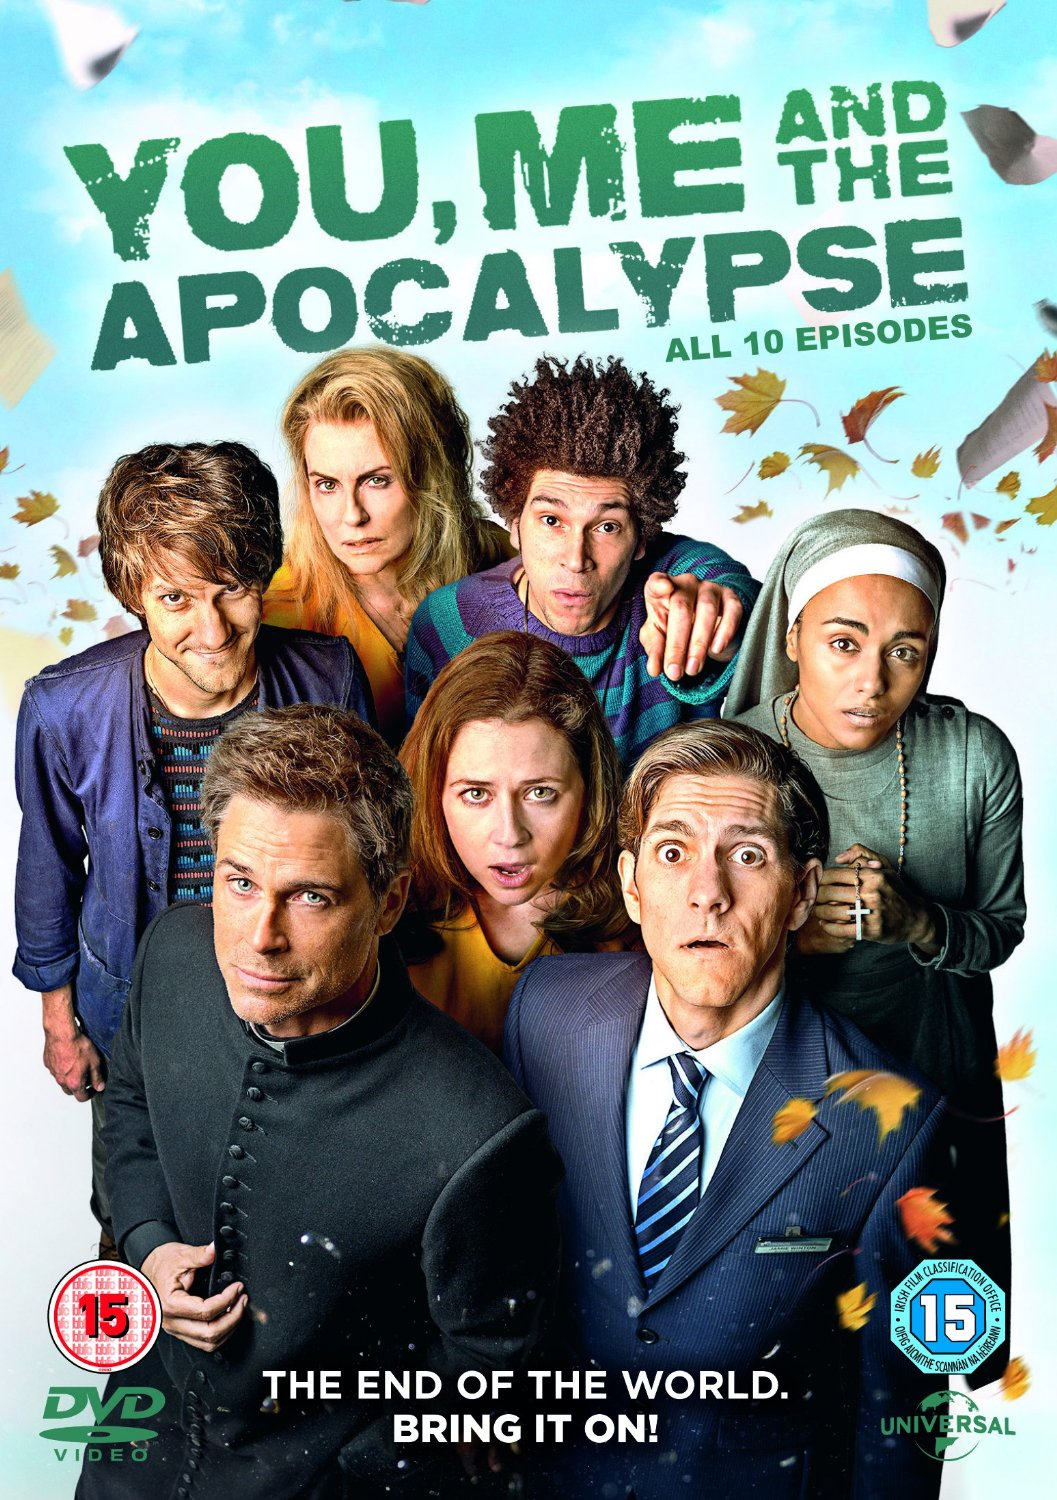 You Me And The Apocalypse DVD Review